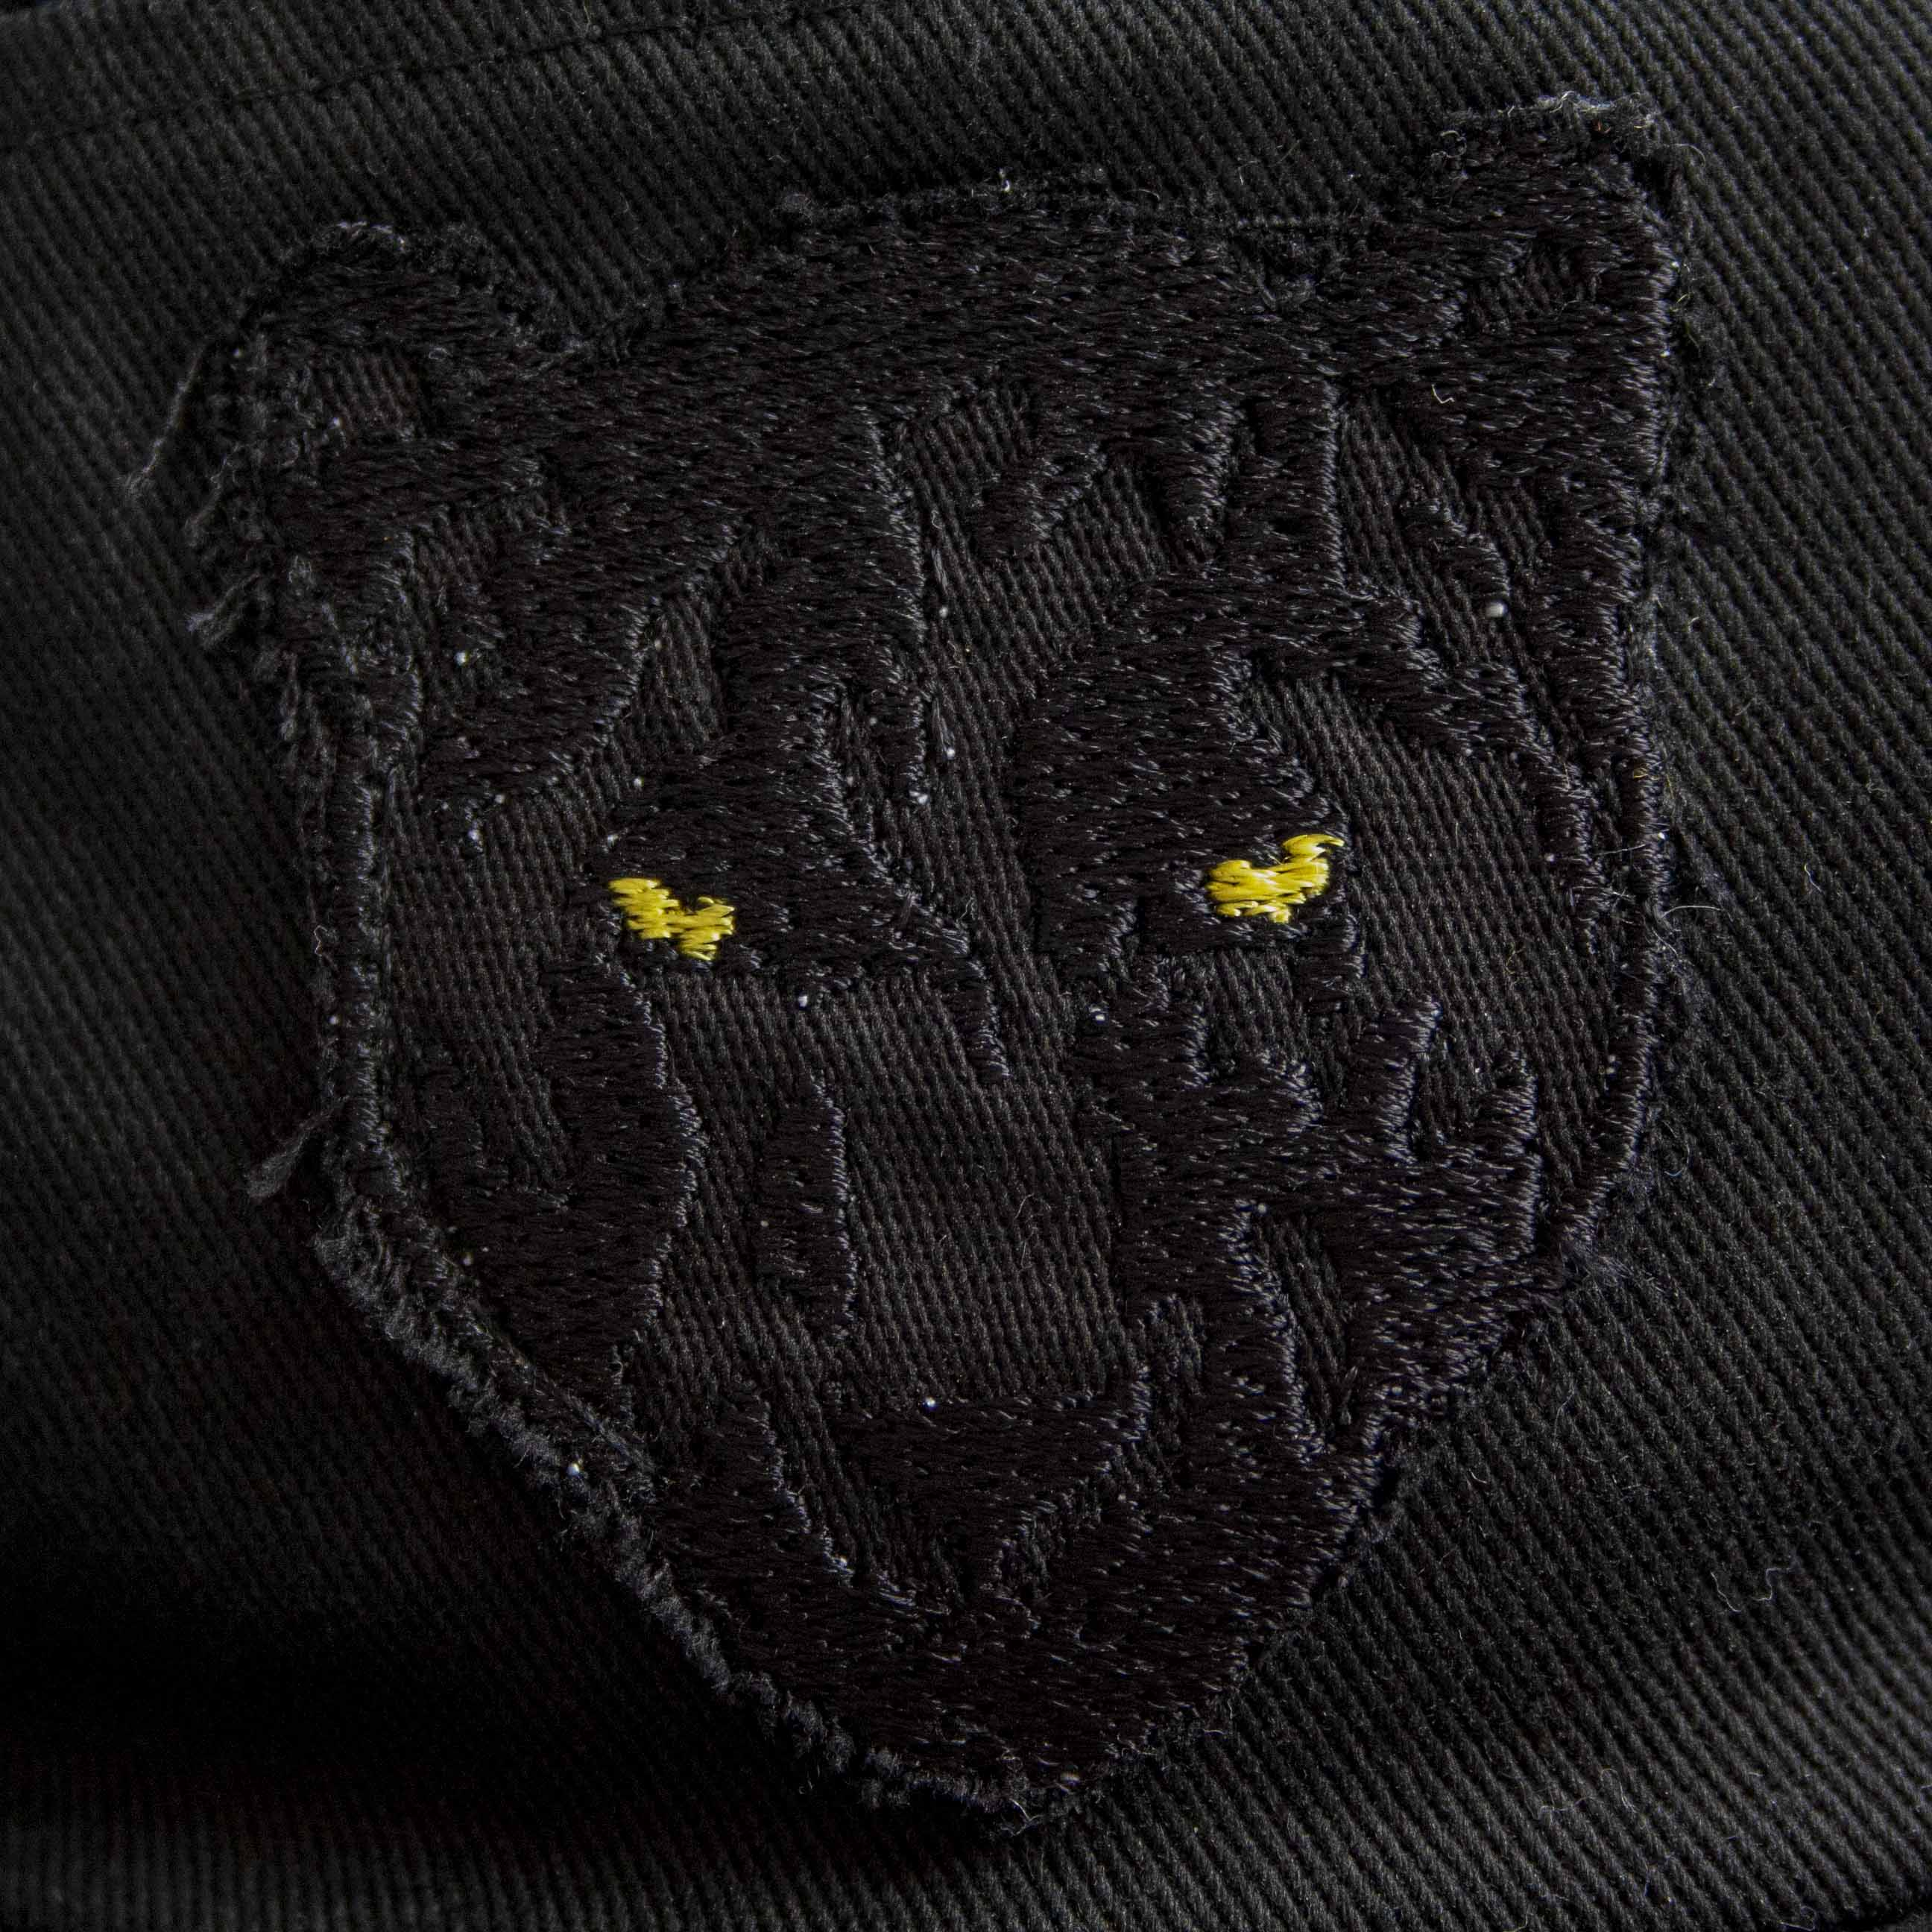 Black Panther 5 Panel Cap (Black)